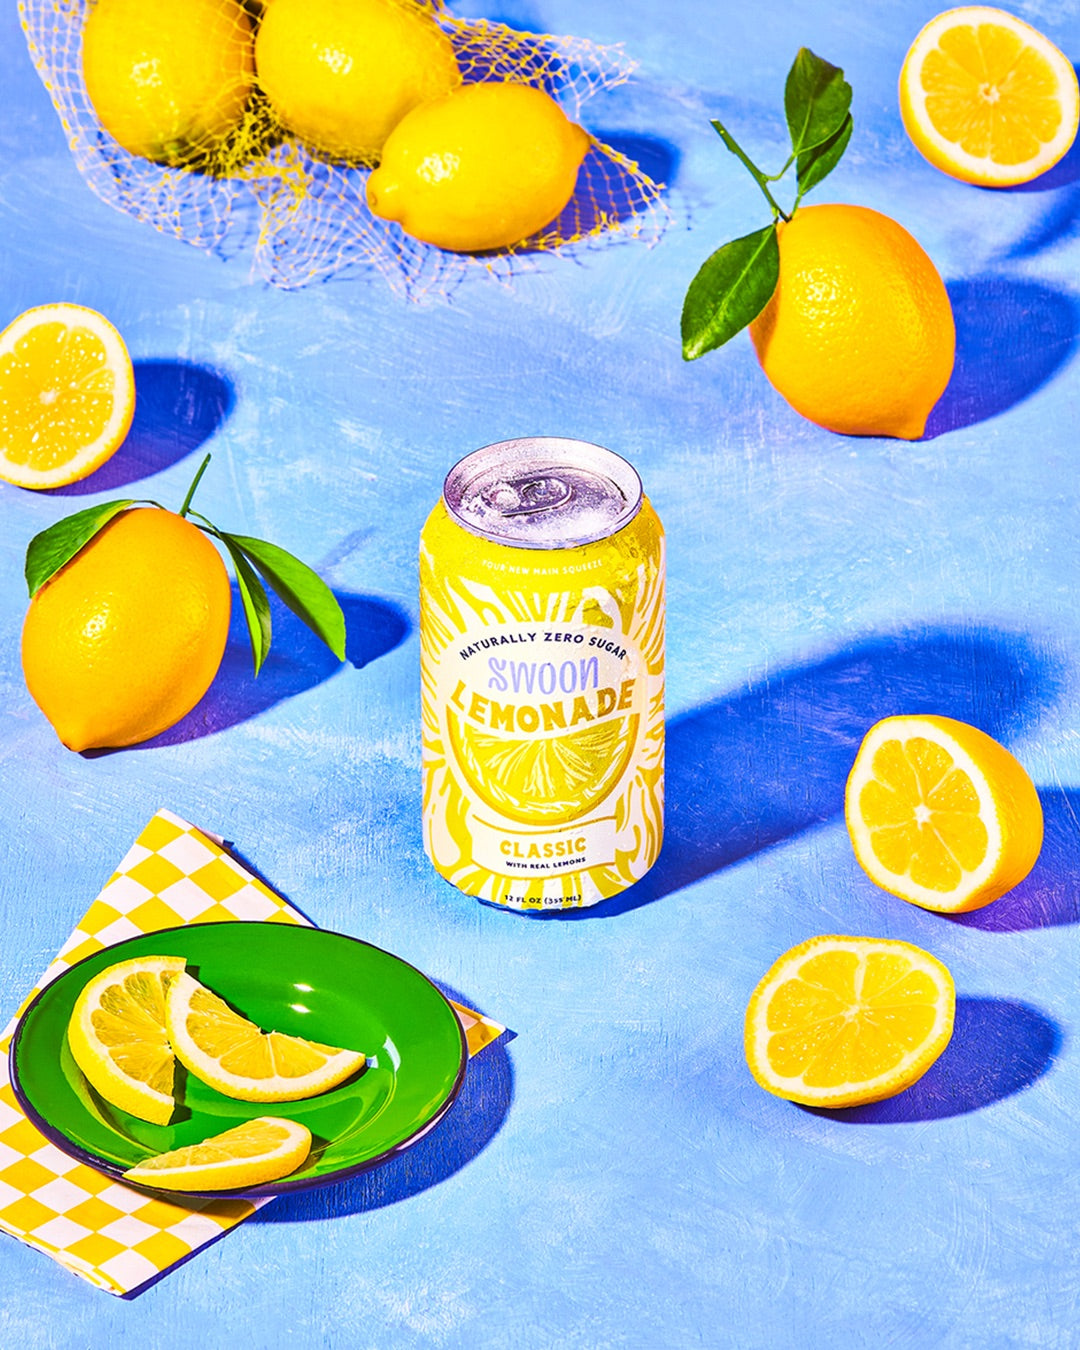 A can of classic Swoon lemonade against a blue background along with lemons displayed.